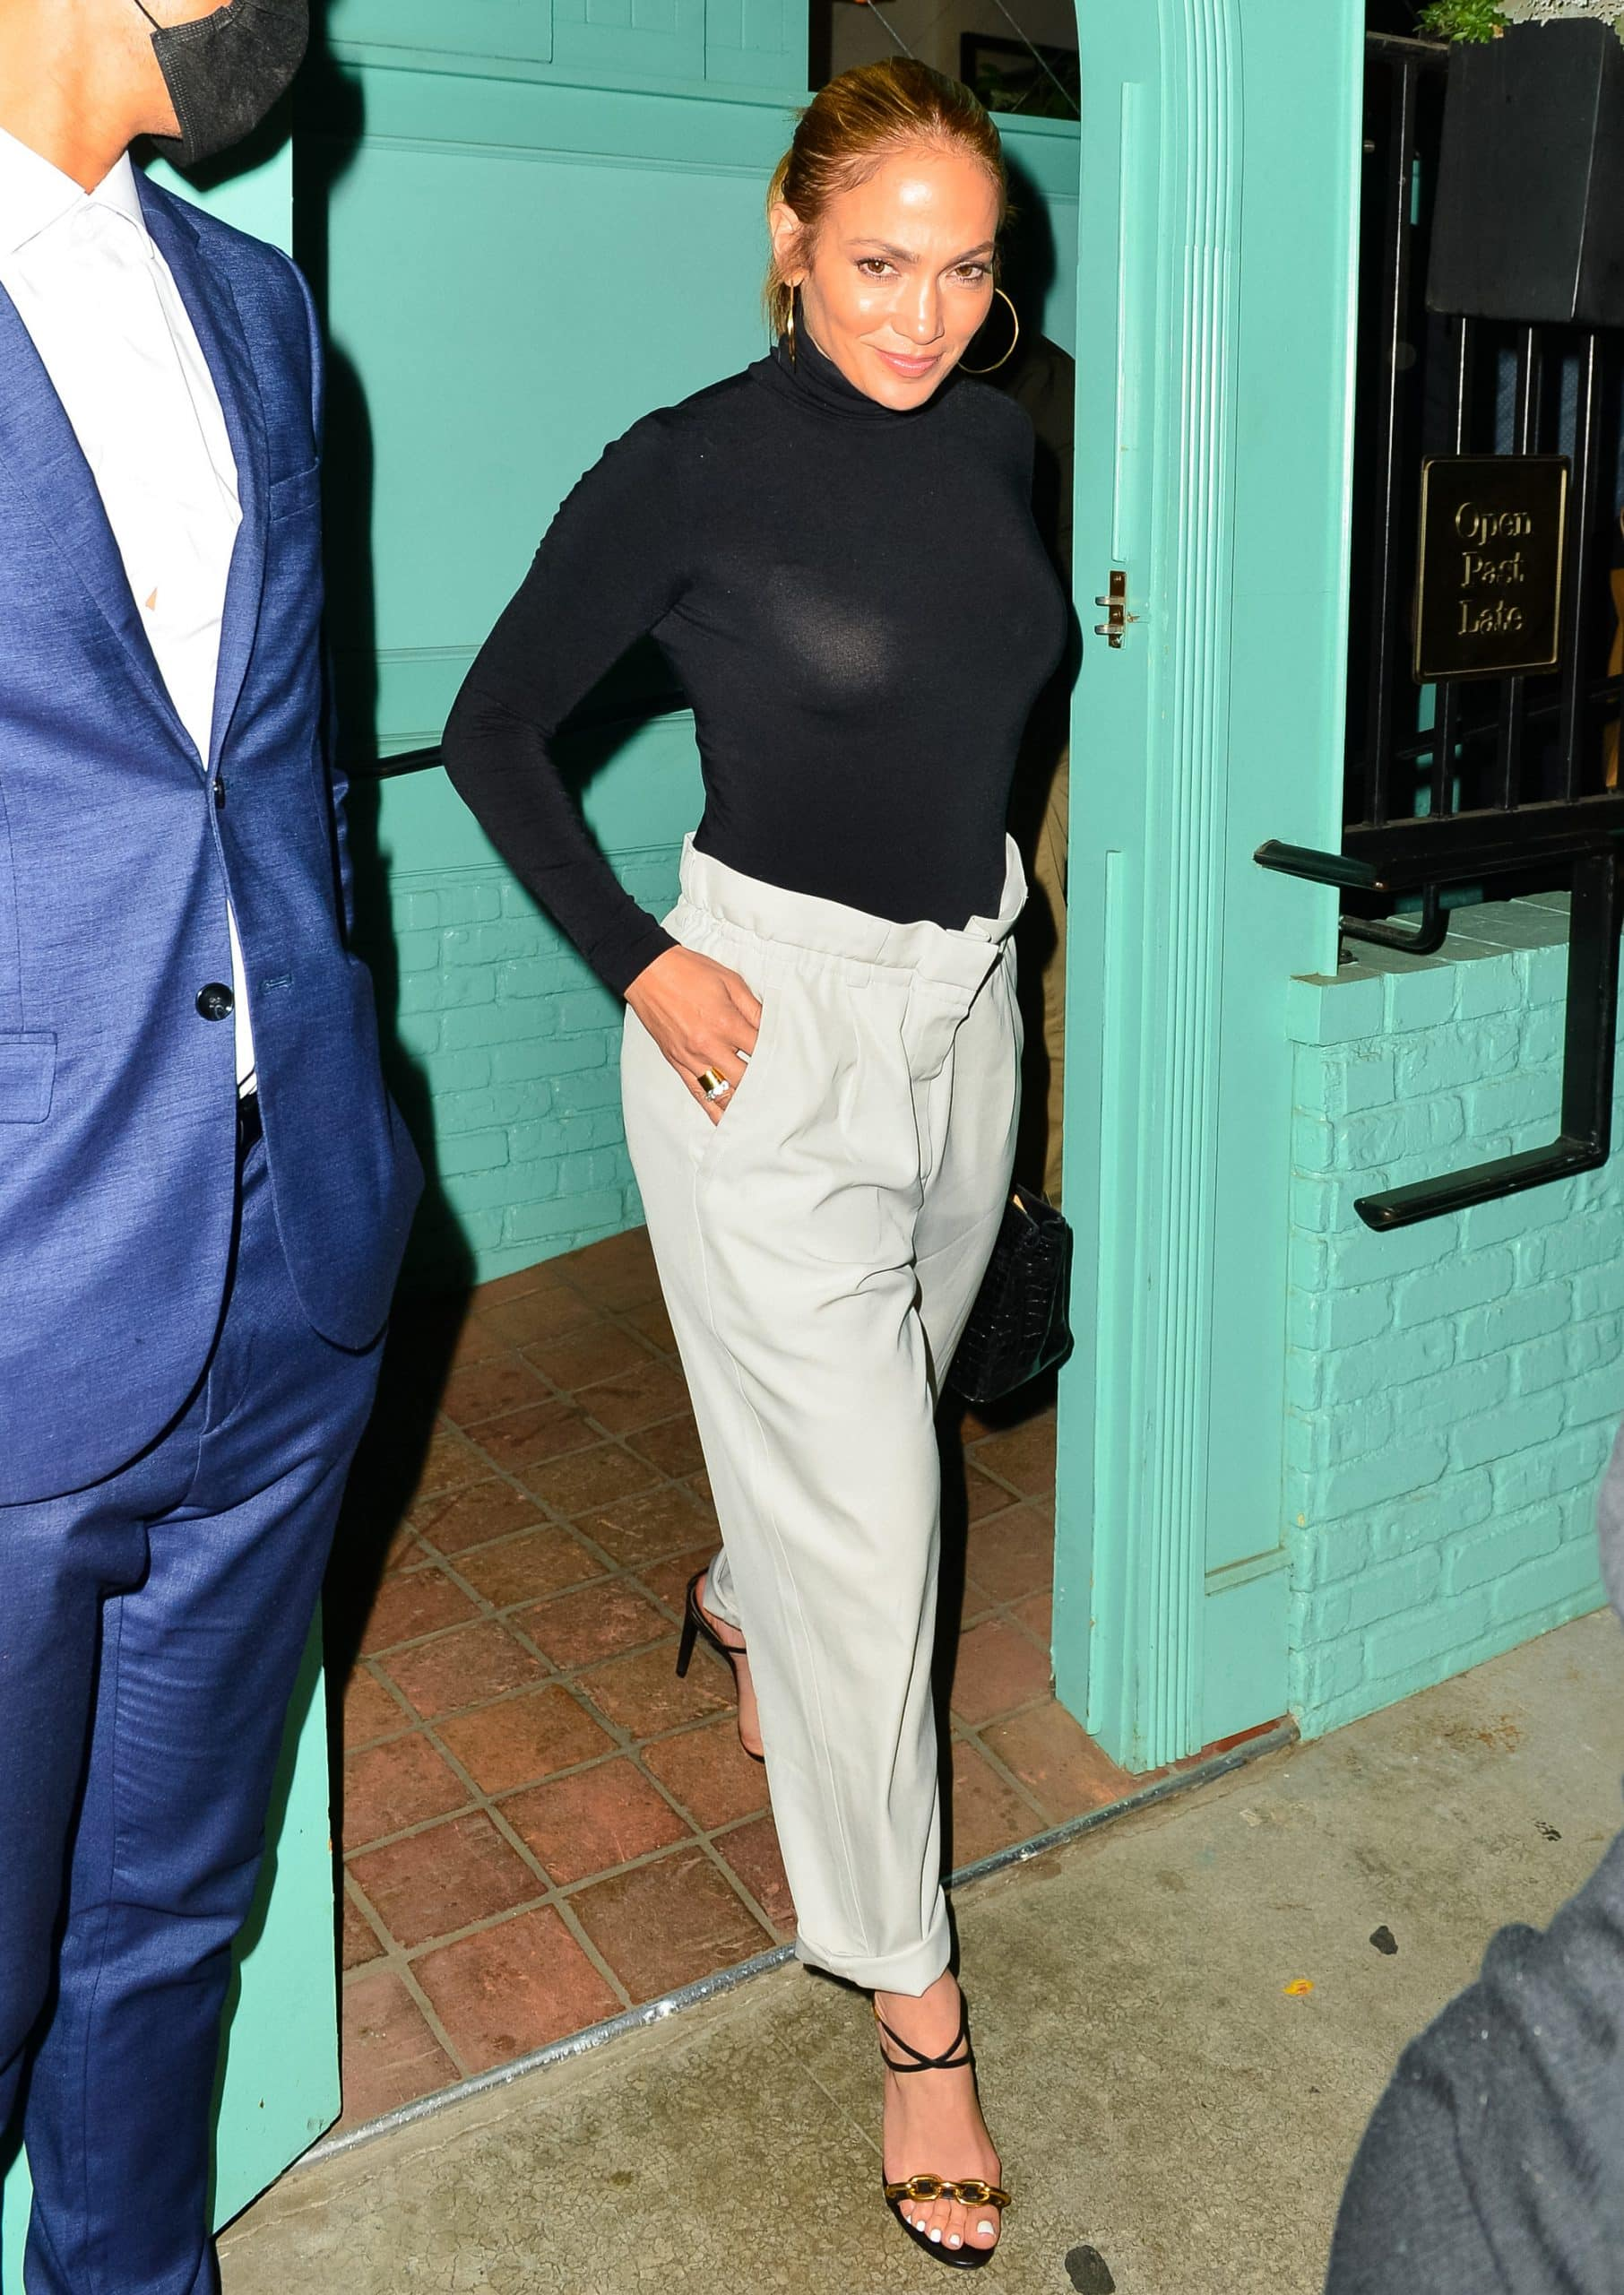 Jennifer Lopez grabs dinner with friends at Olivetta restaurant in Los Angeles on August 17, 2021